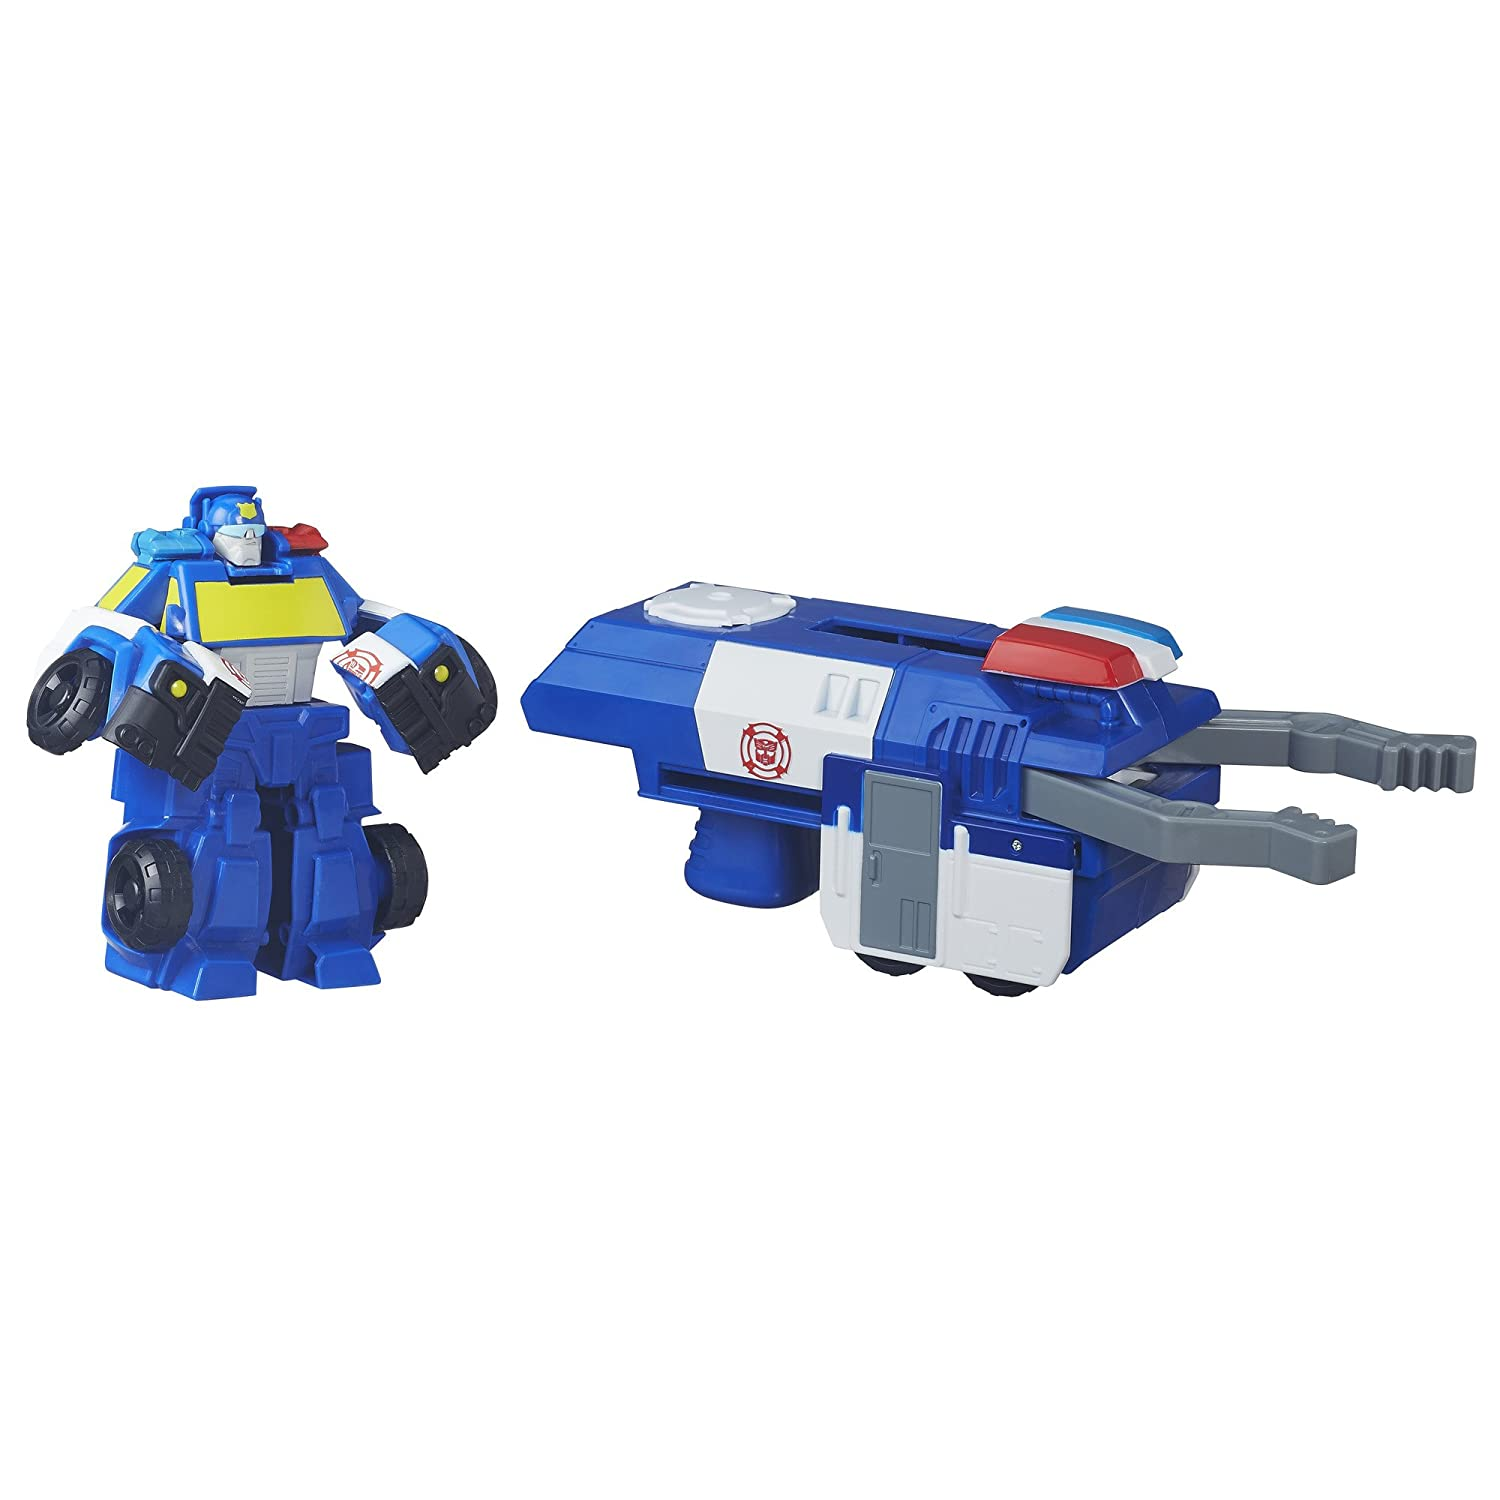 Playskool Heroes Transformers Rescue Bots Capture Claw Chase Hasbro B4953AS0